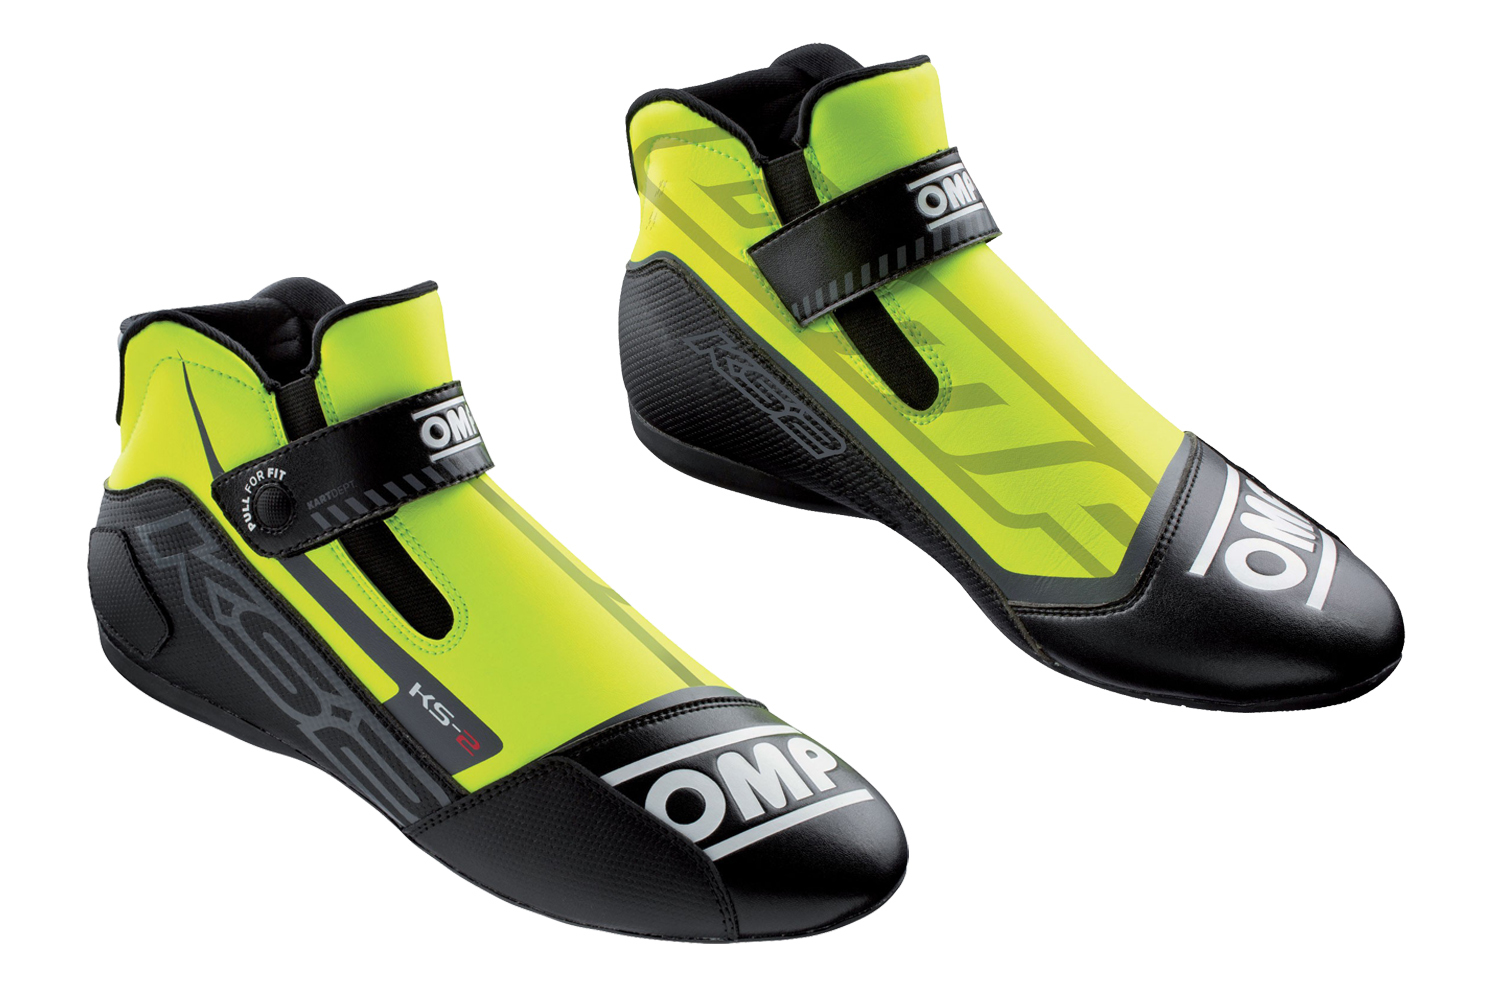 OMP Racing IC82505943 Shoe, KS-2, Driving, Mid-Top, FIA Approved, Suede Leather Outer, Fire Retardant Fabric Inner, Fluorescent Yellow / Black, Size 9, Pair